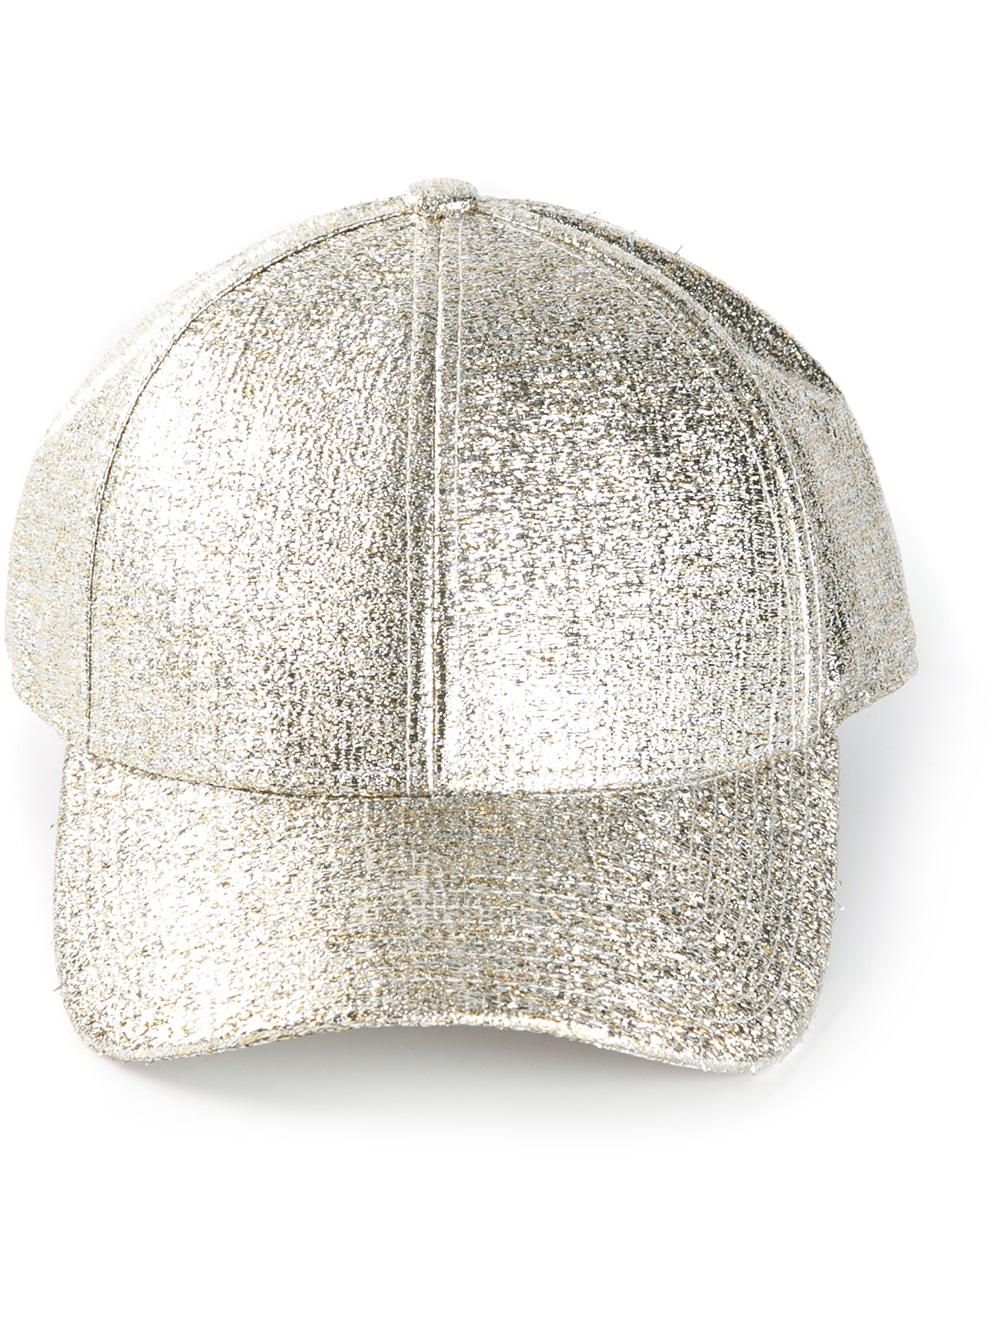 6db6f556815 Lyst - Acne Studios Camp Glitter Cap in Metallic for Men